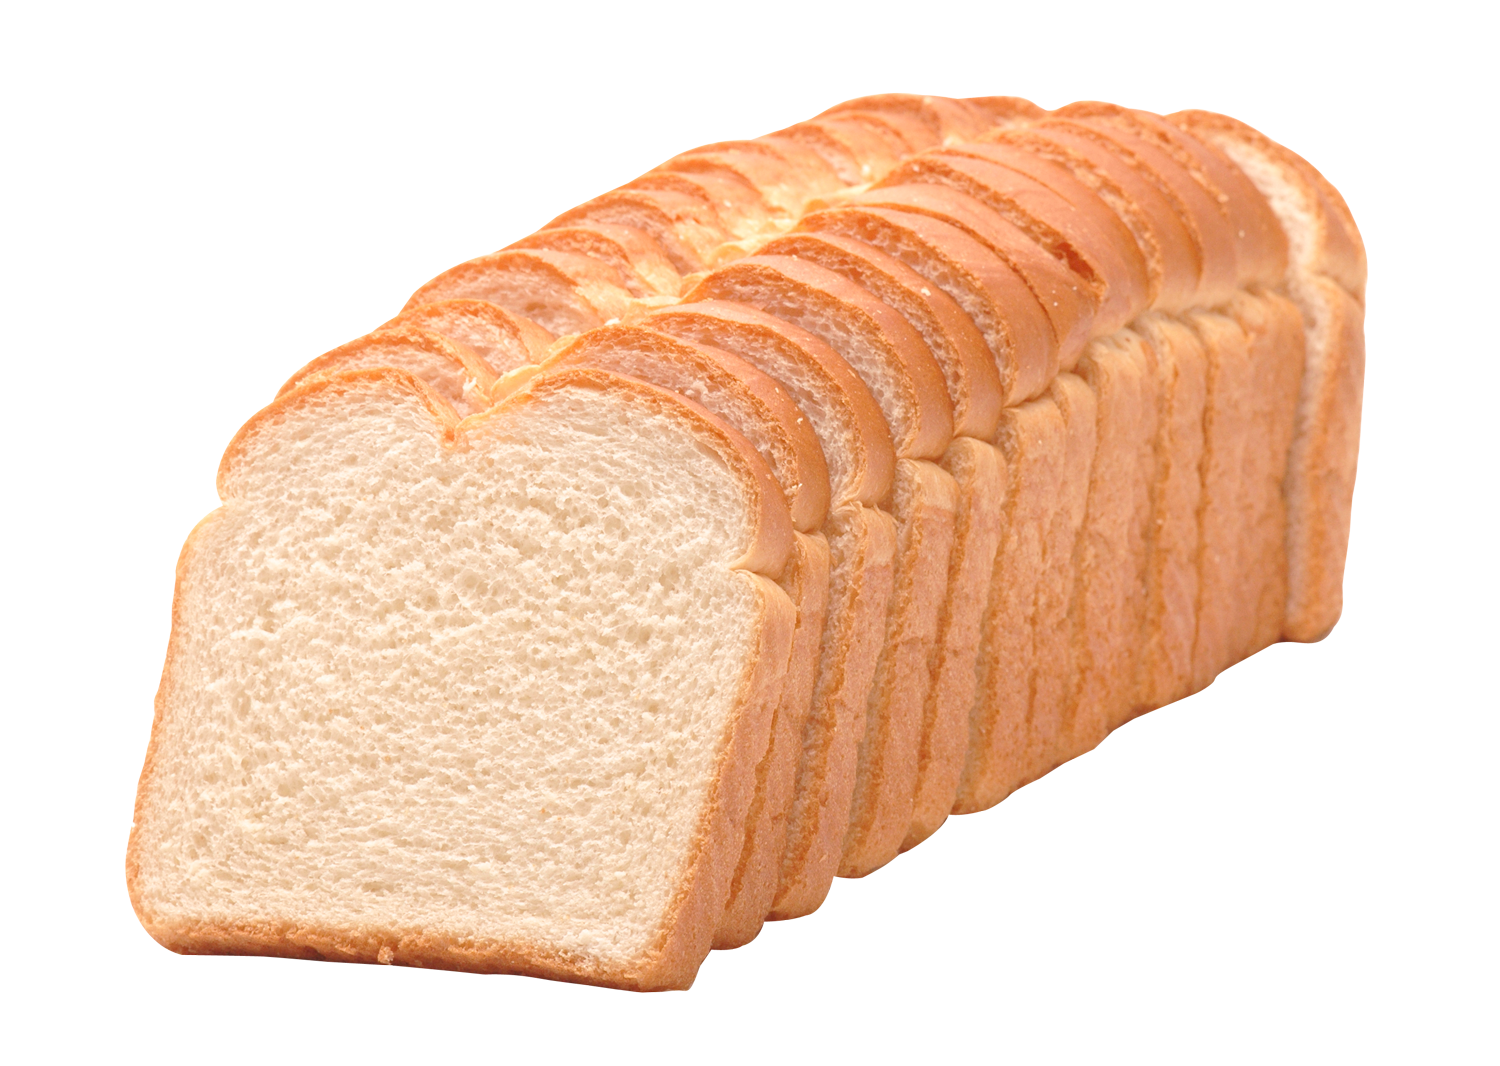 Bread Png - This high quality free PNG image without any background is about food and  bread.